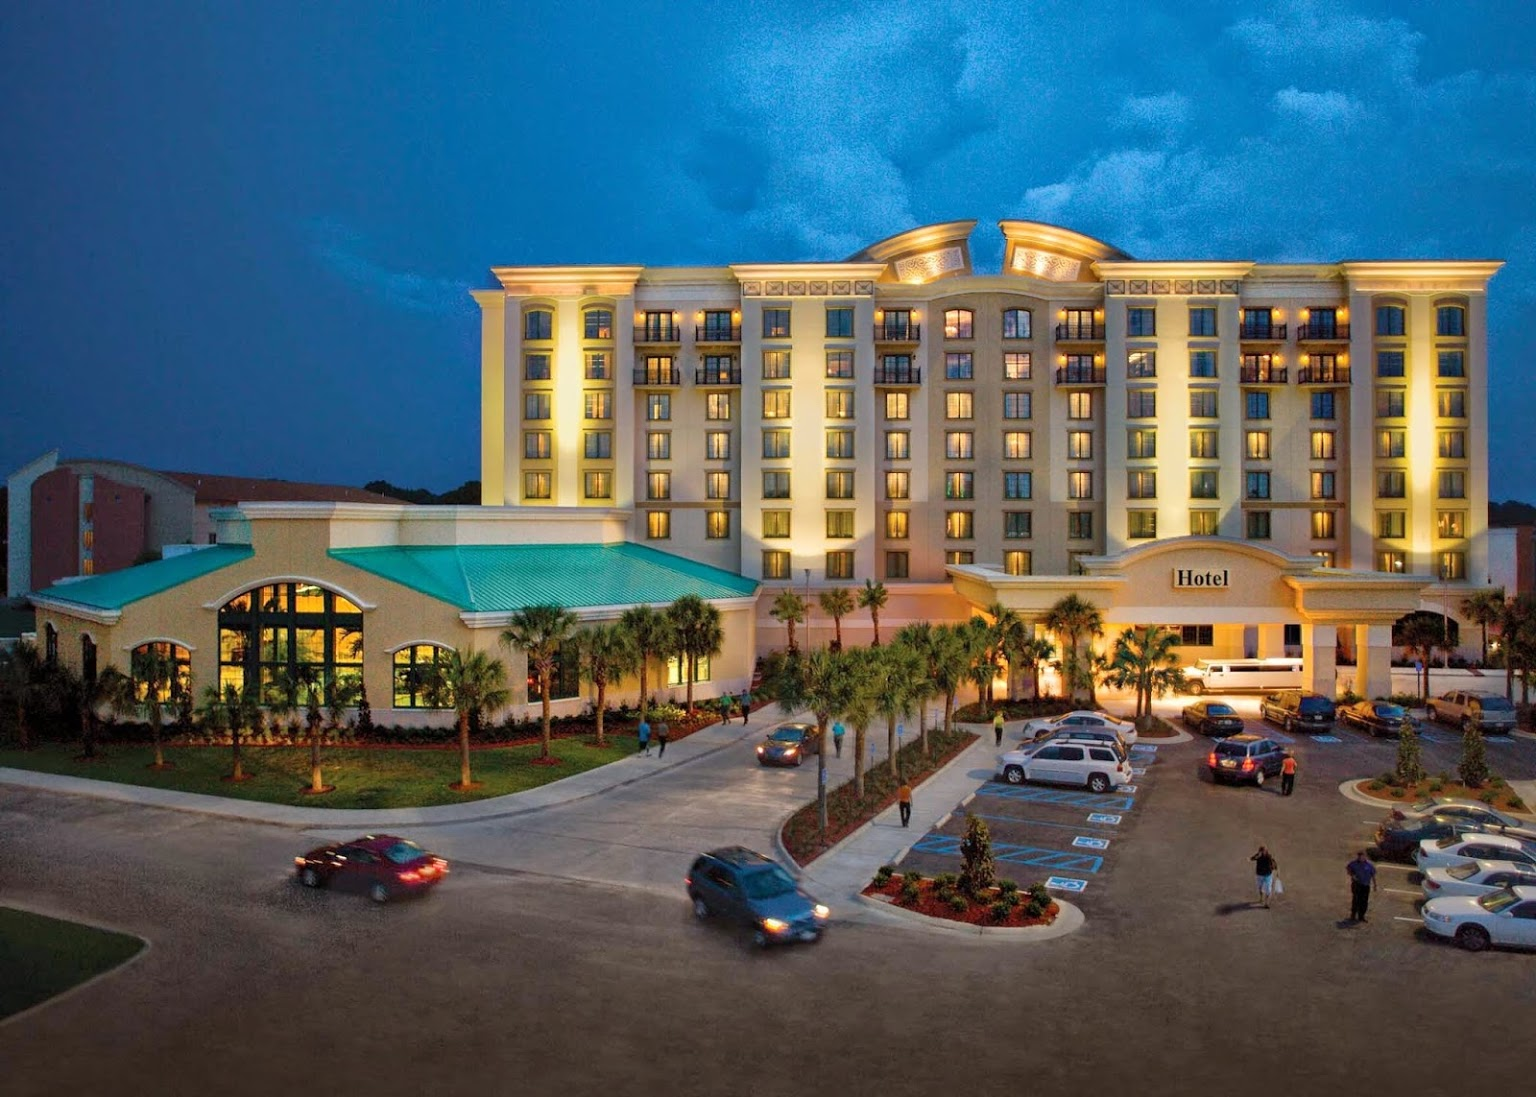 Tunica-Biloxi Tribe casino employees face suit for fatal crash